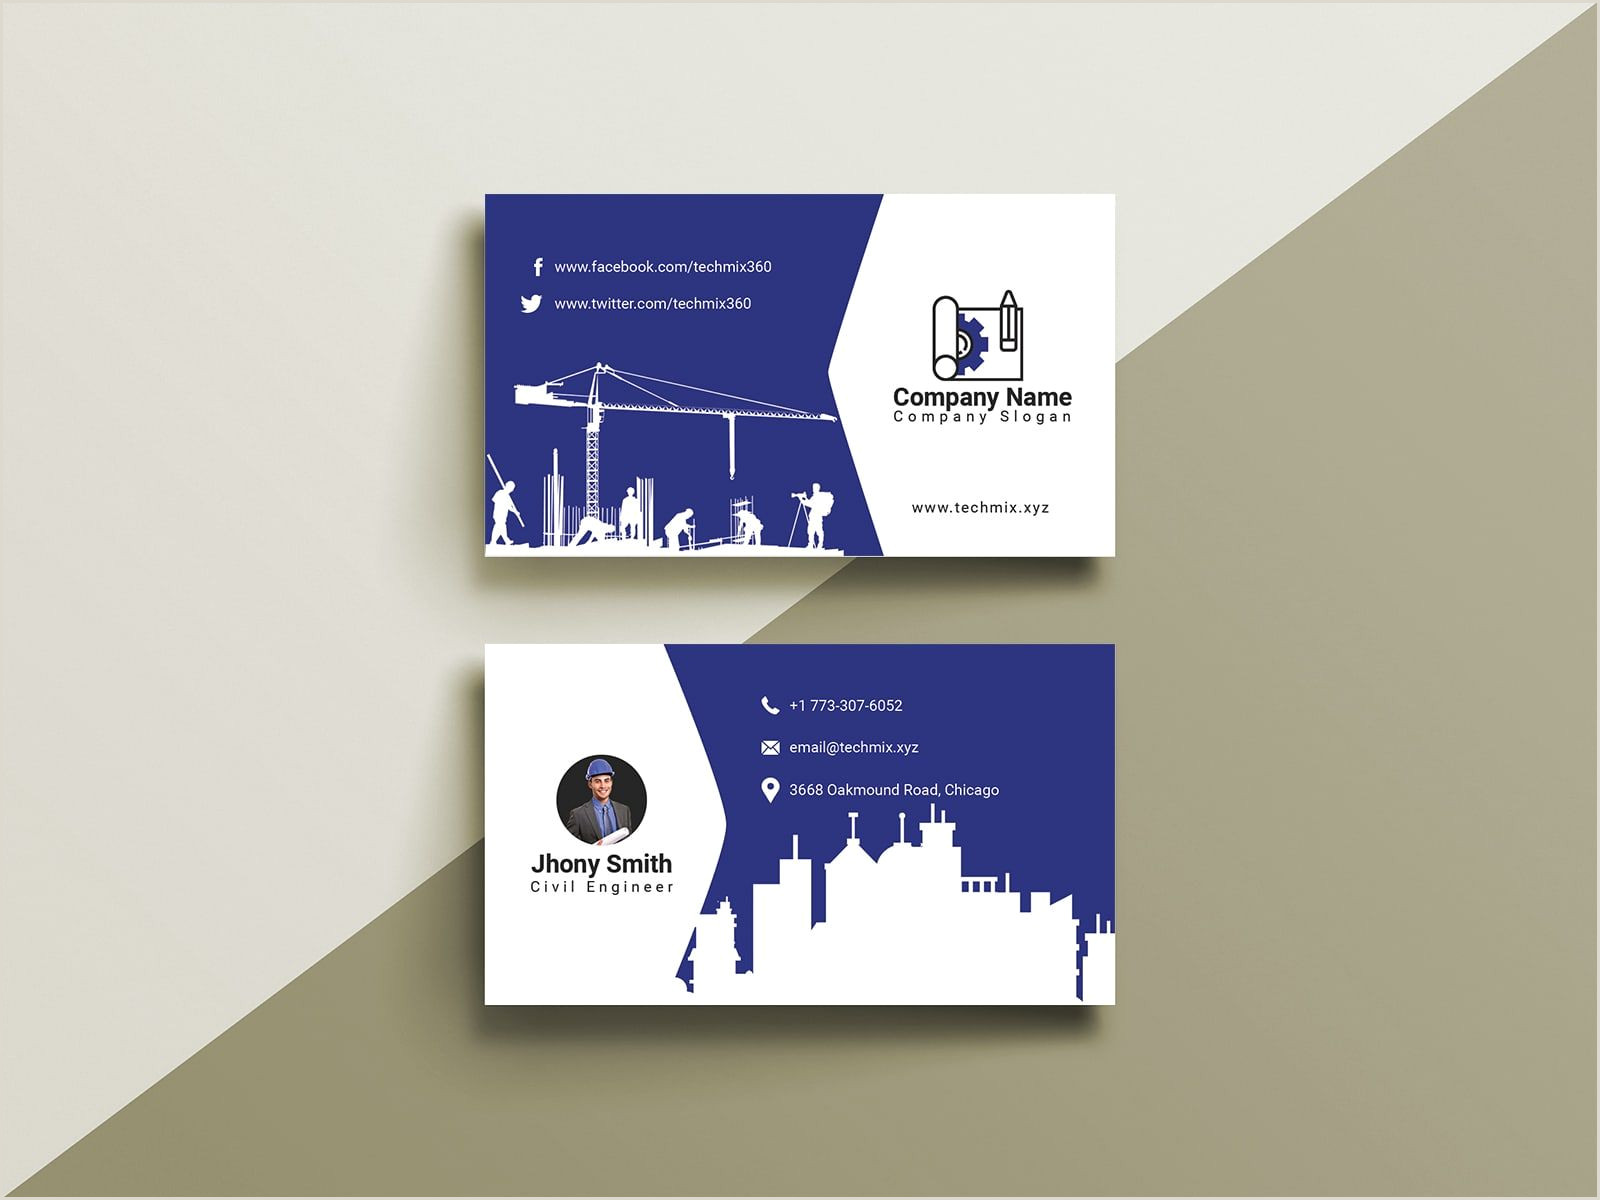 The Best Business Cards To Order Online 10 Civil Engineer Business Cards Images